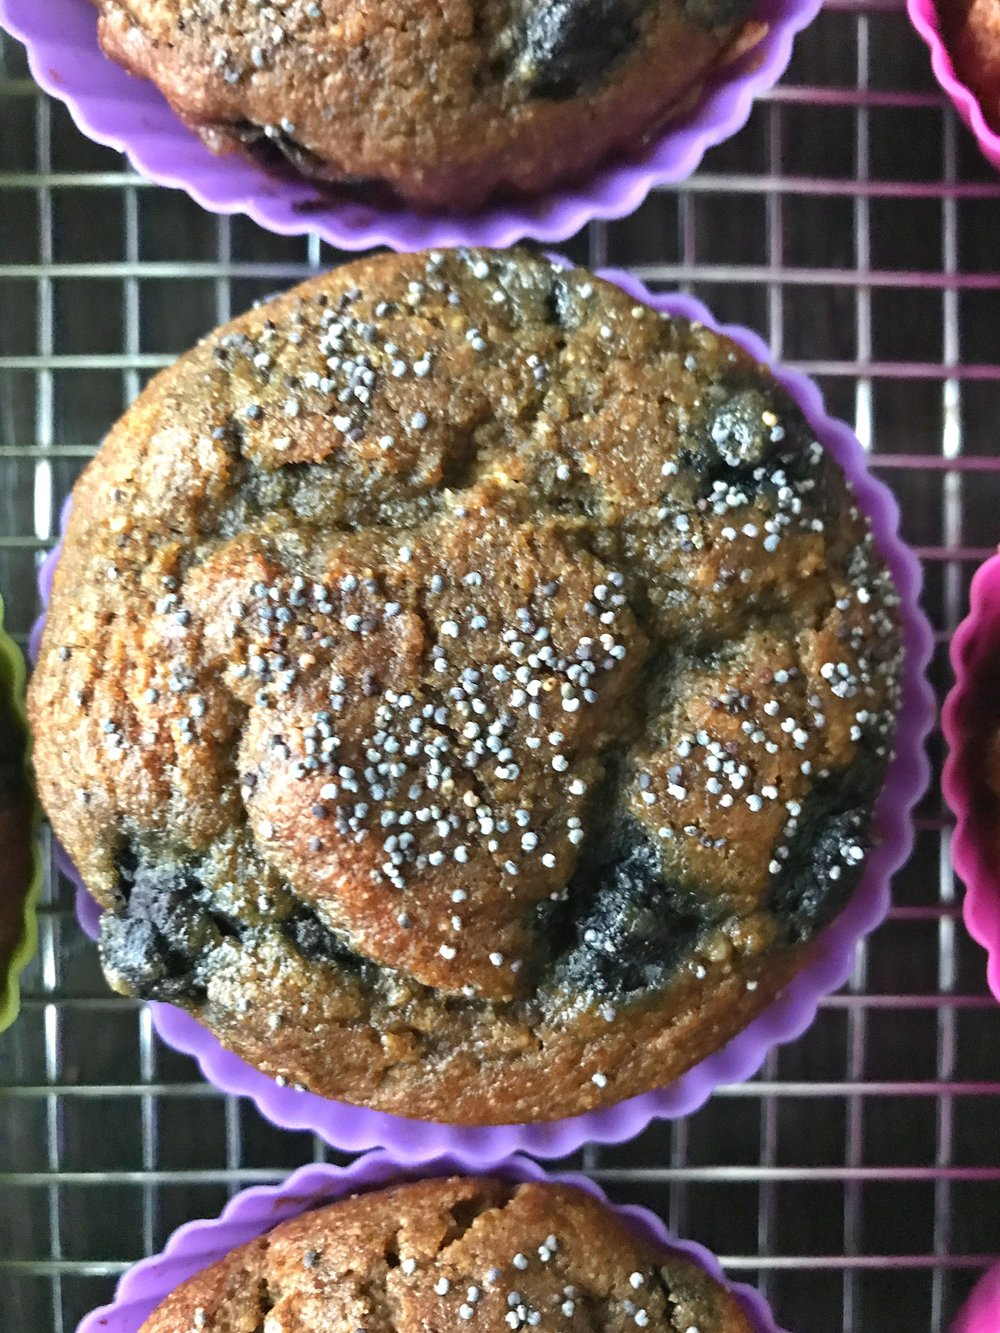 Muffins made with frozen blueberries.